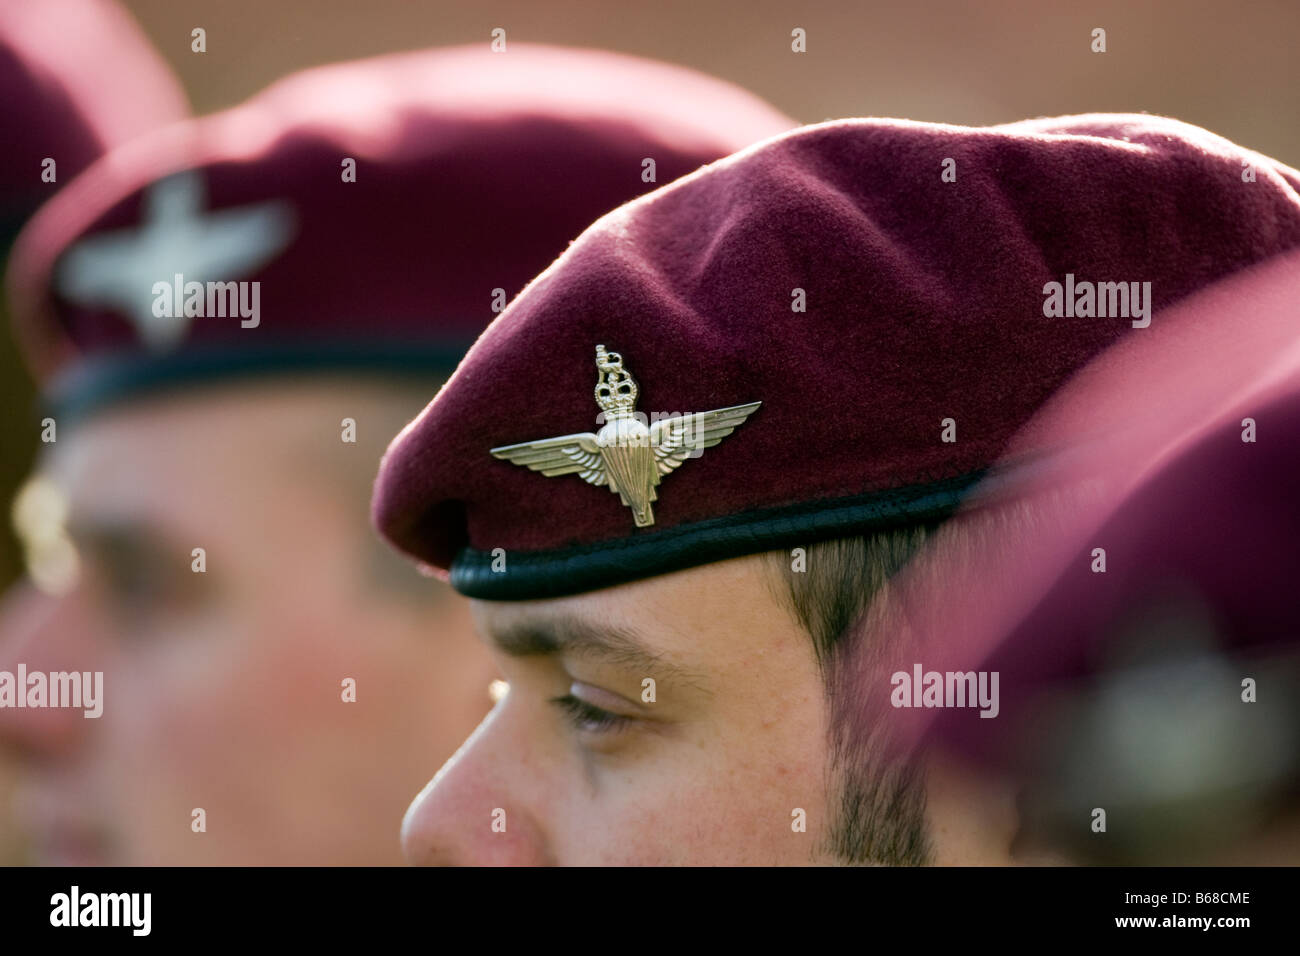 Members of the British Army's elite Parachute Regiment on parade in Melville Barracks Colchester Garrison - Stock Image